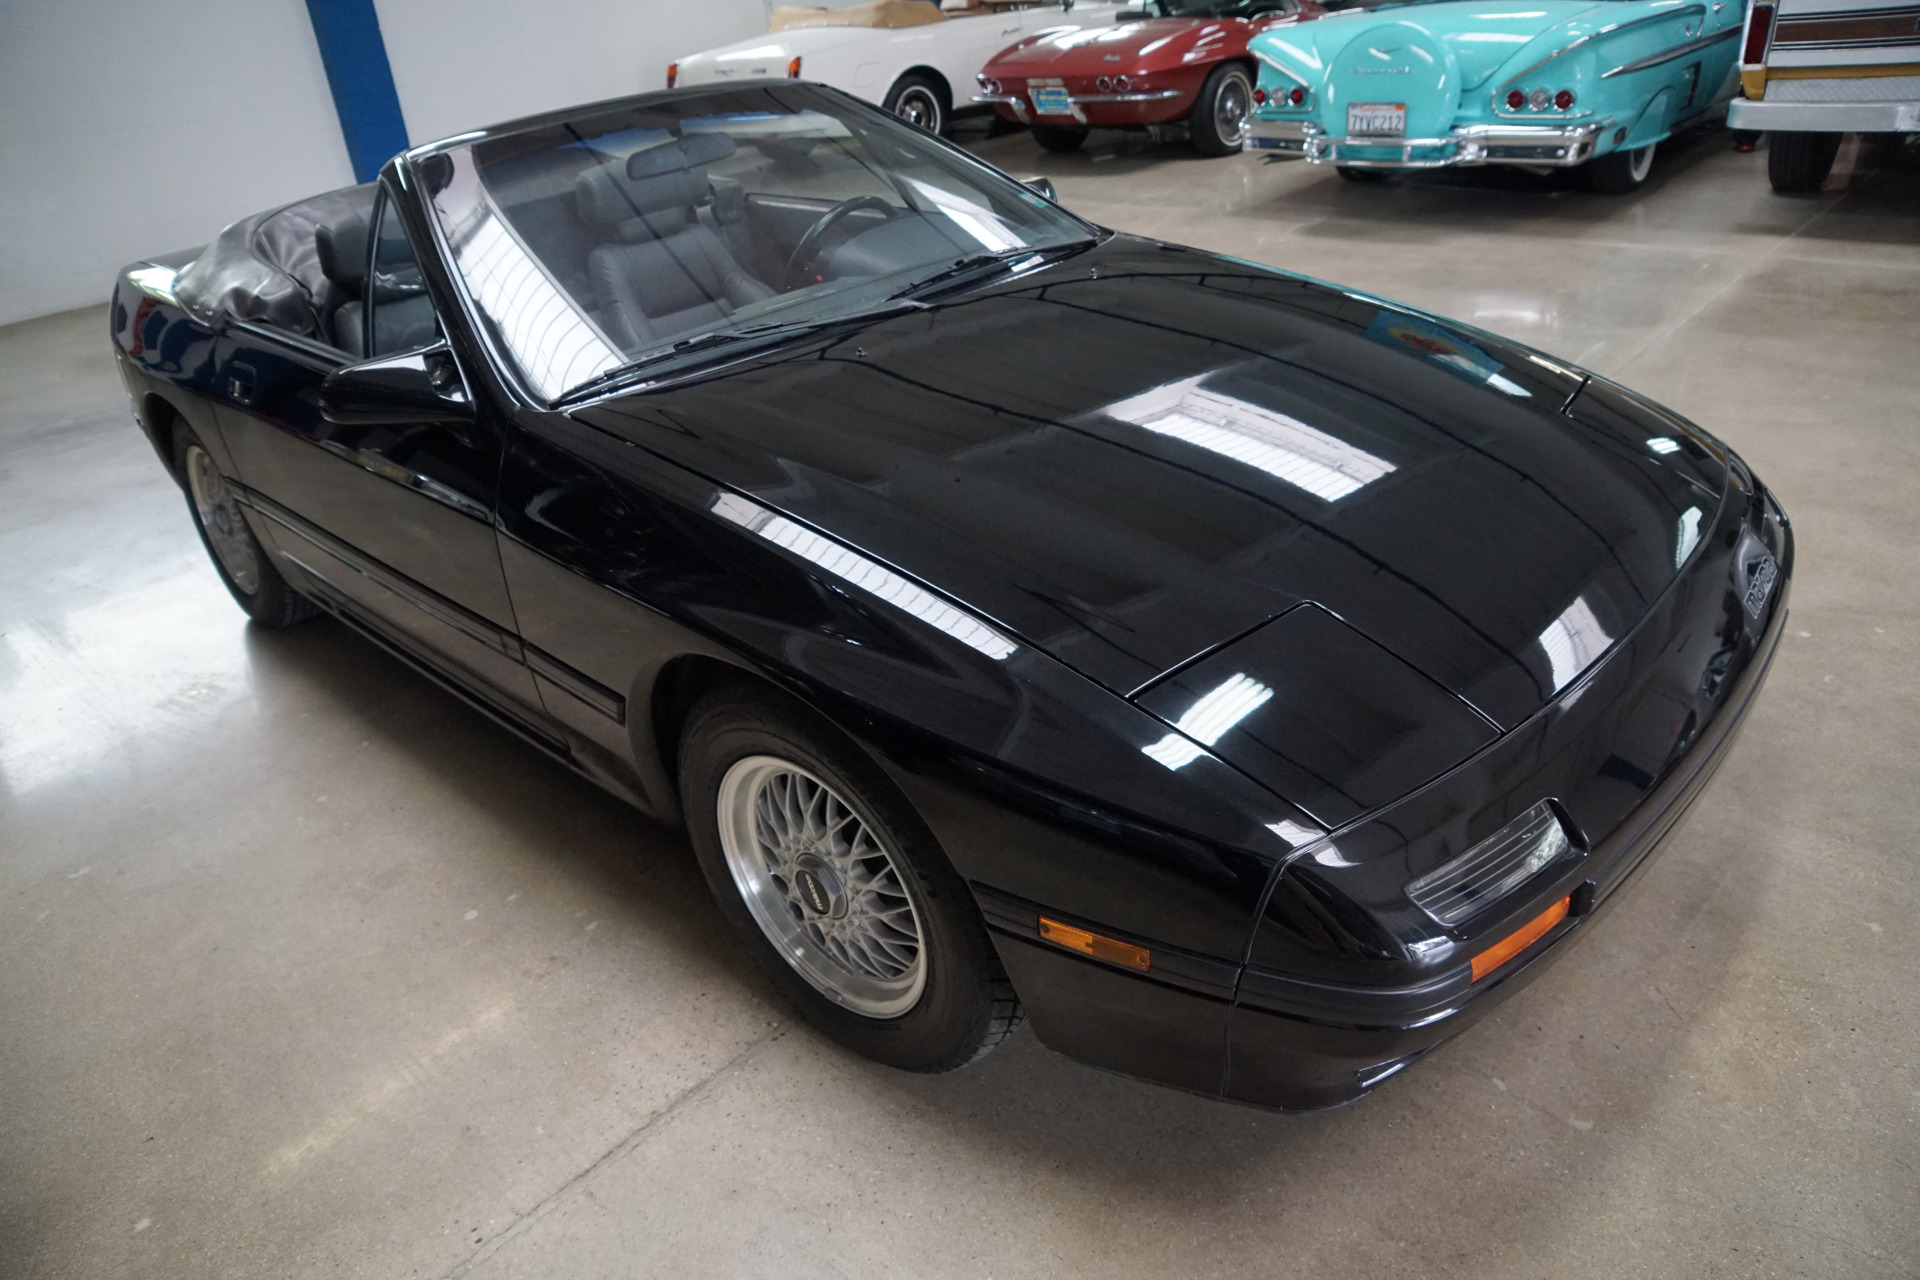 1988 mazda rx 7 convertible stock 283 for sale near torrance ca ca mazda dealer. Black Bedroom Furniture Sets. Home Design Ideas